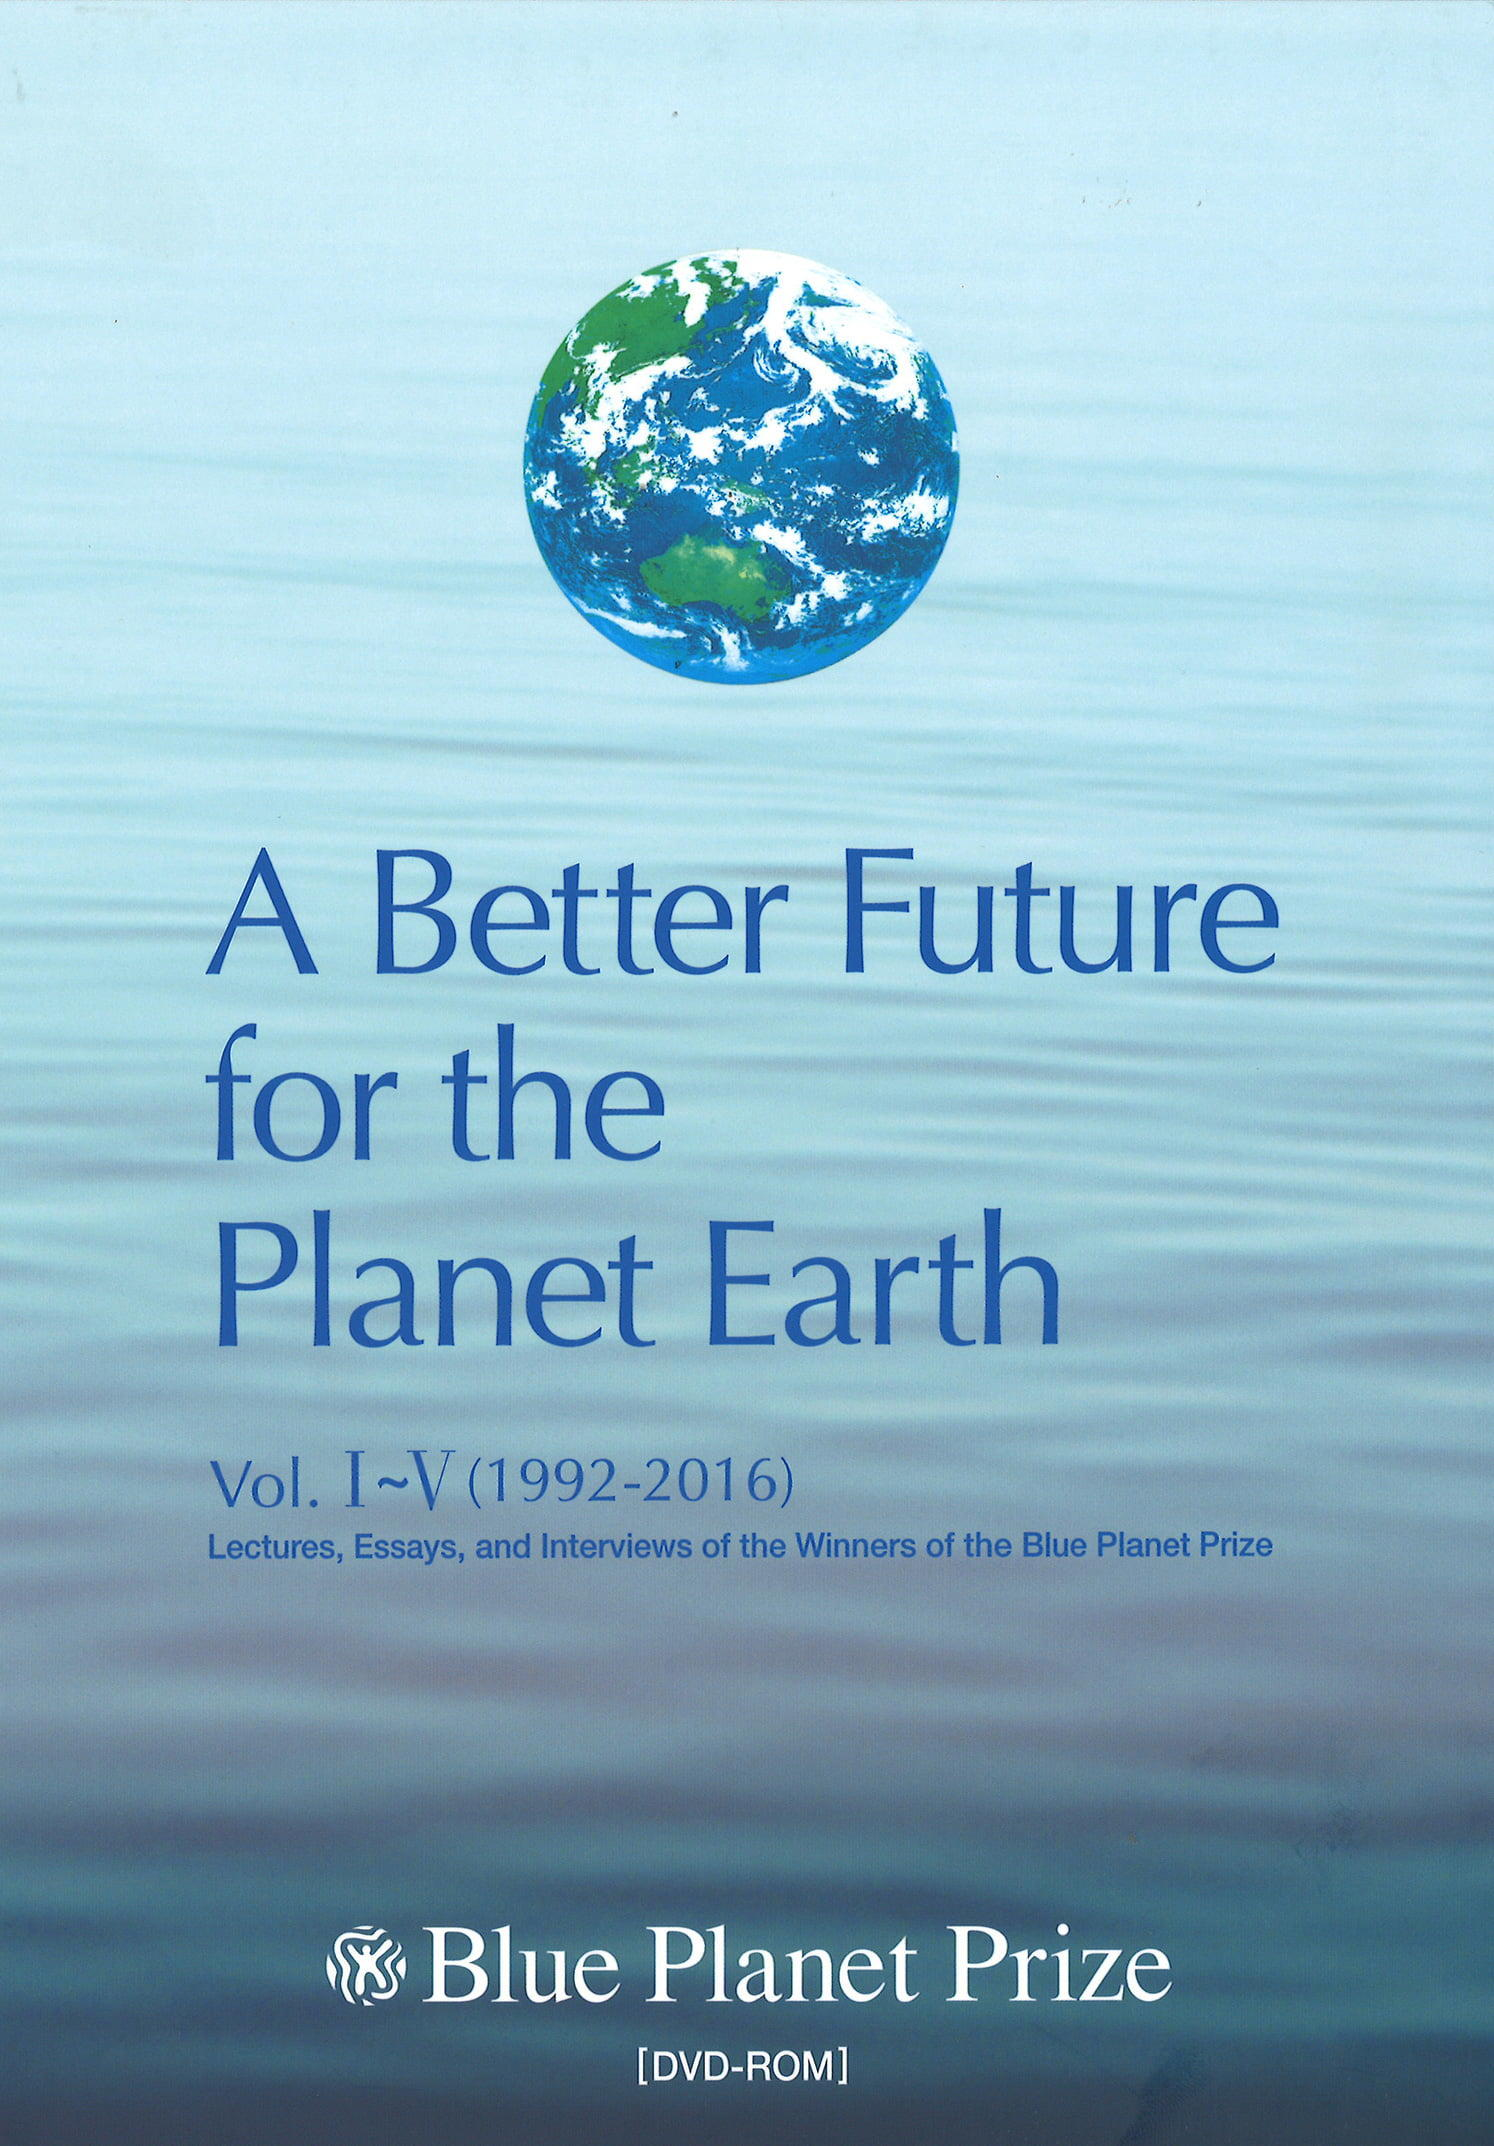 A Better Future for the Planet Earth Vol. III